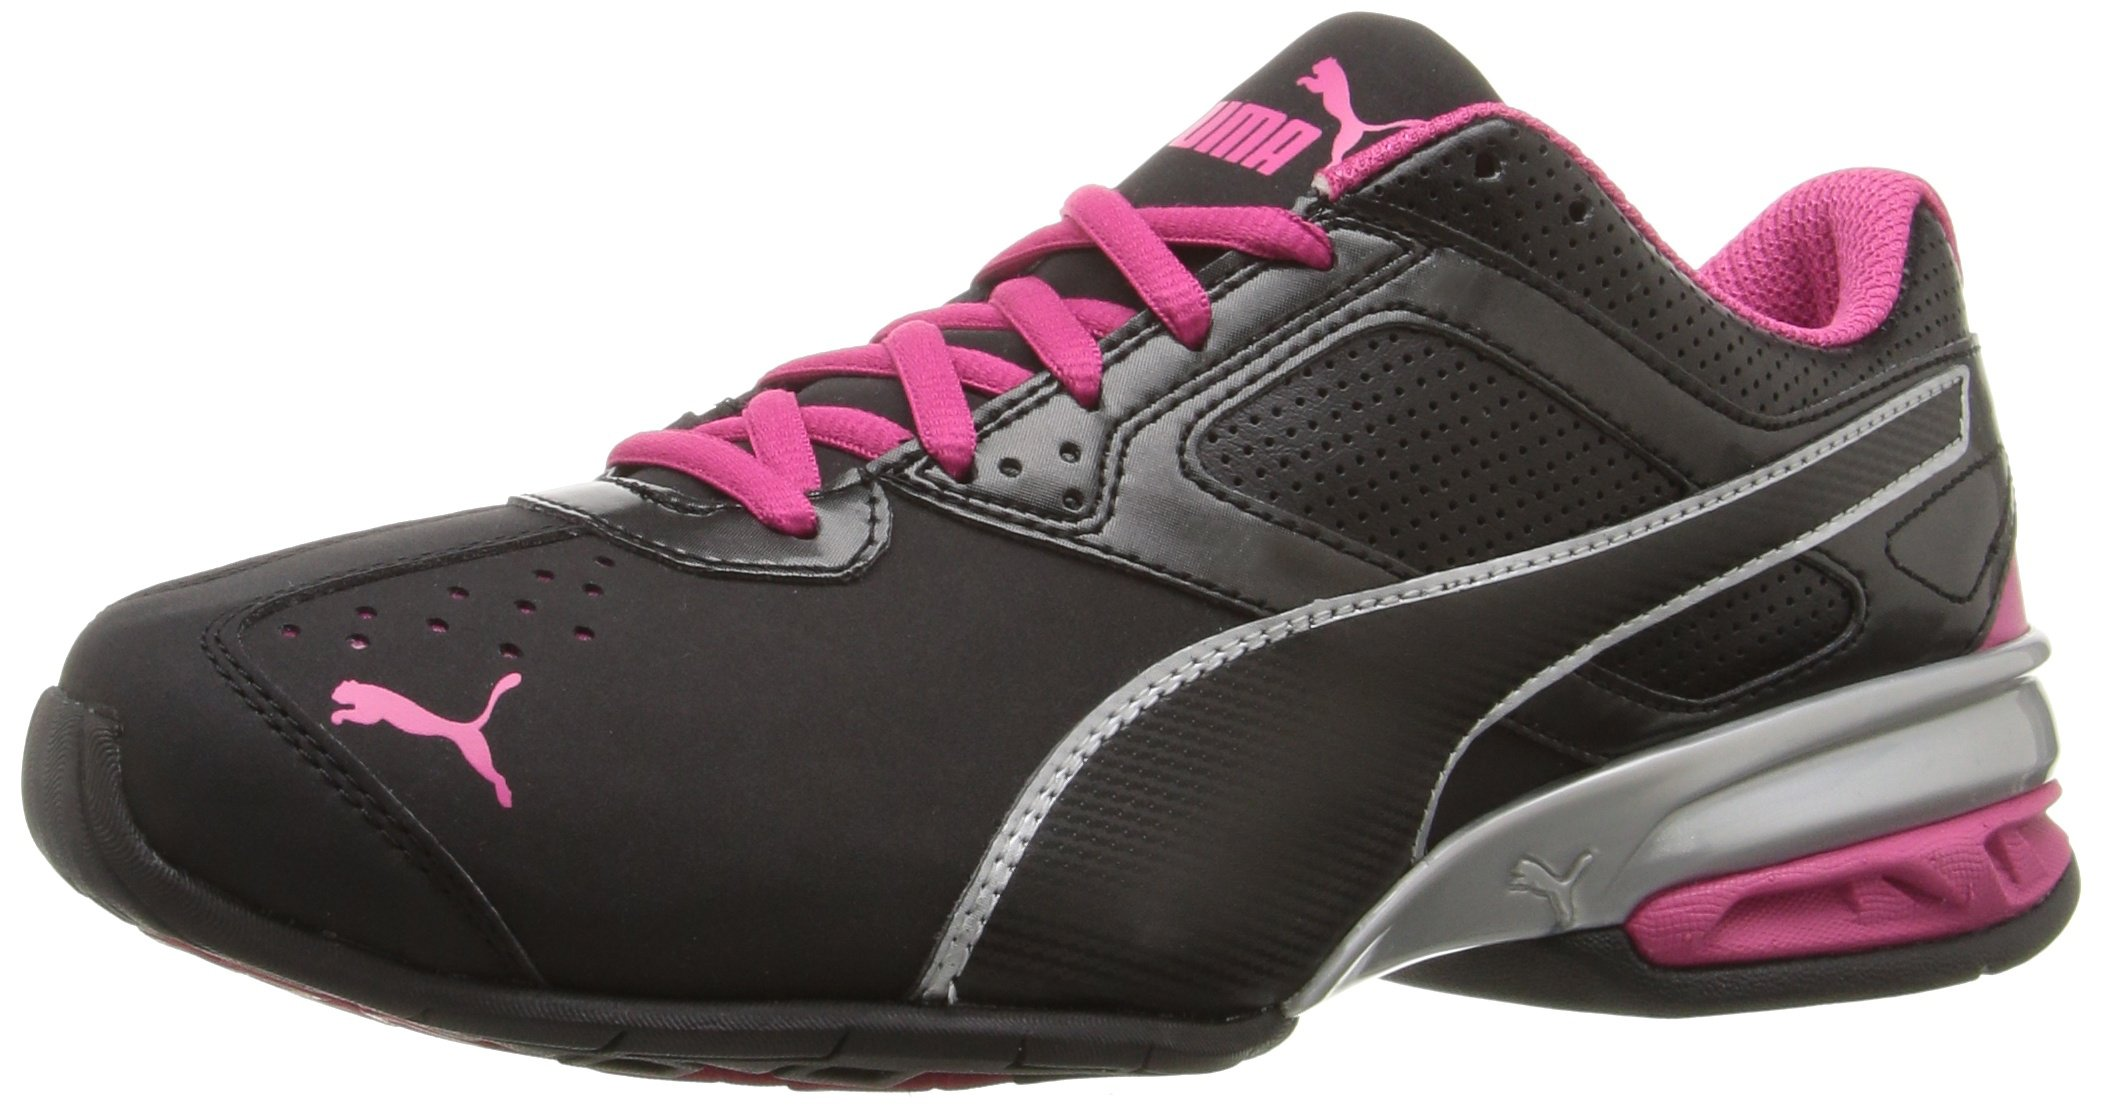 PUMA Women's Tazon 6 WN's fm Cross-Trainer Shoe Black Silver/Beetroot Purple, 7 M US by PUMA (Image #1)